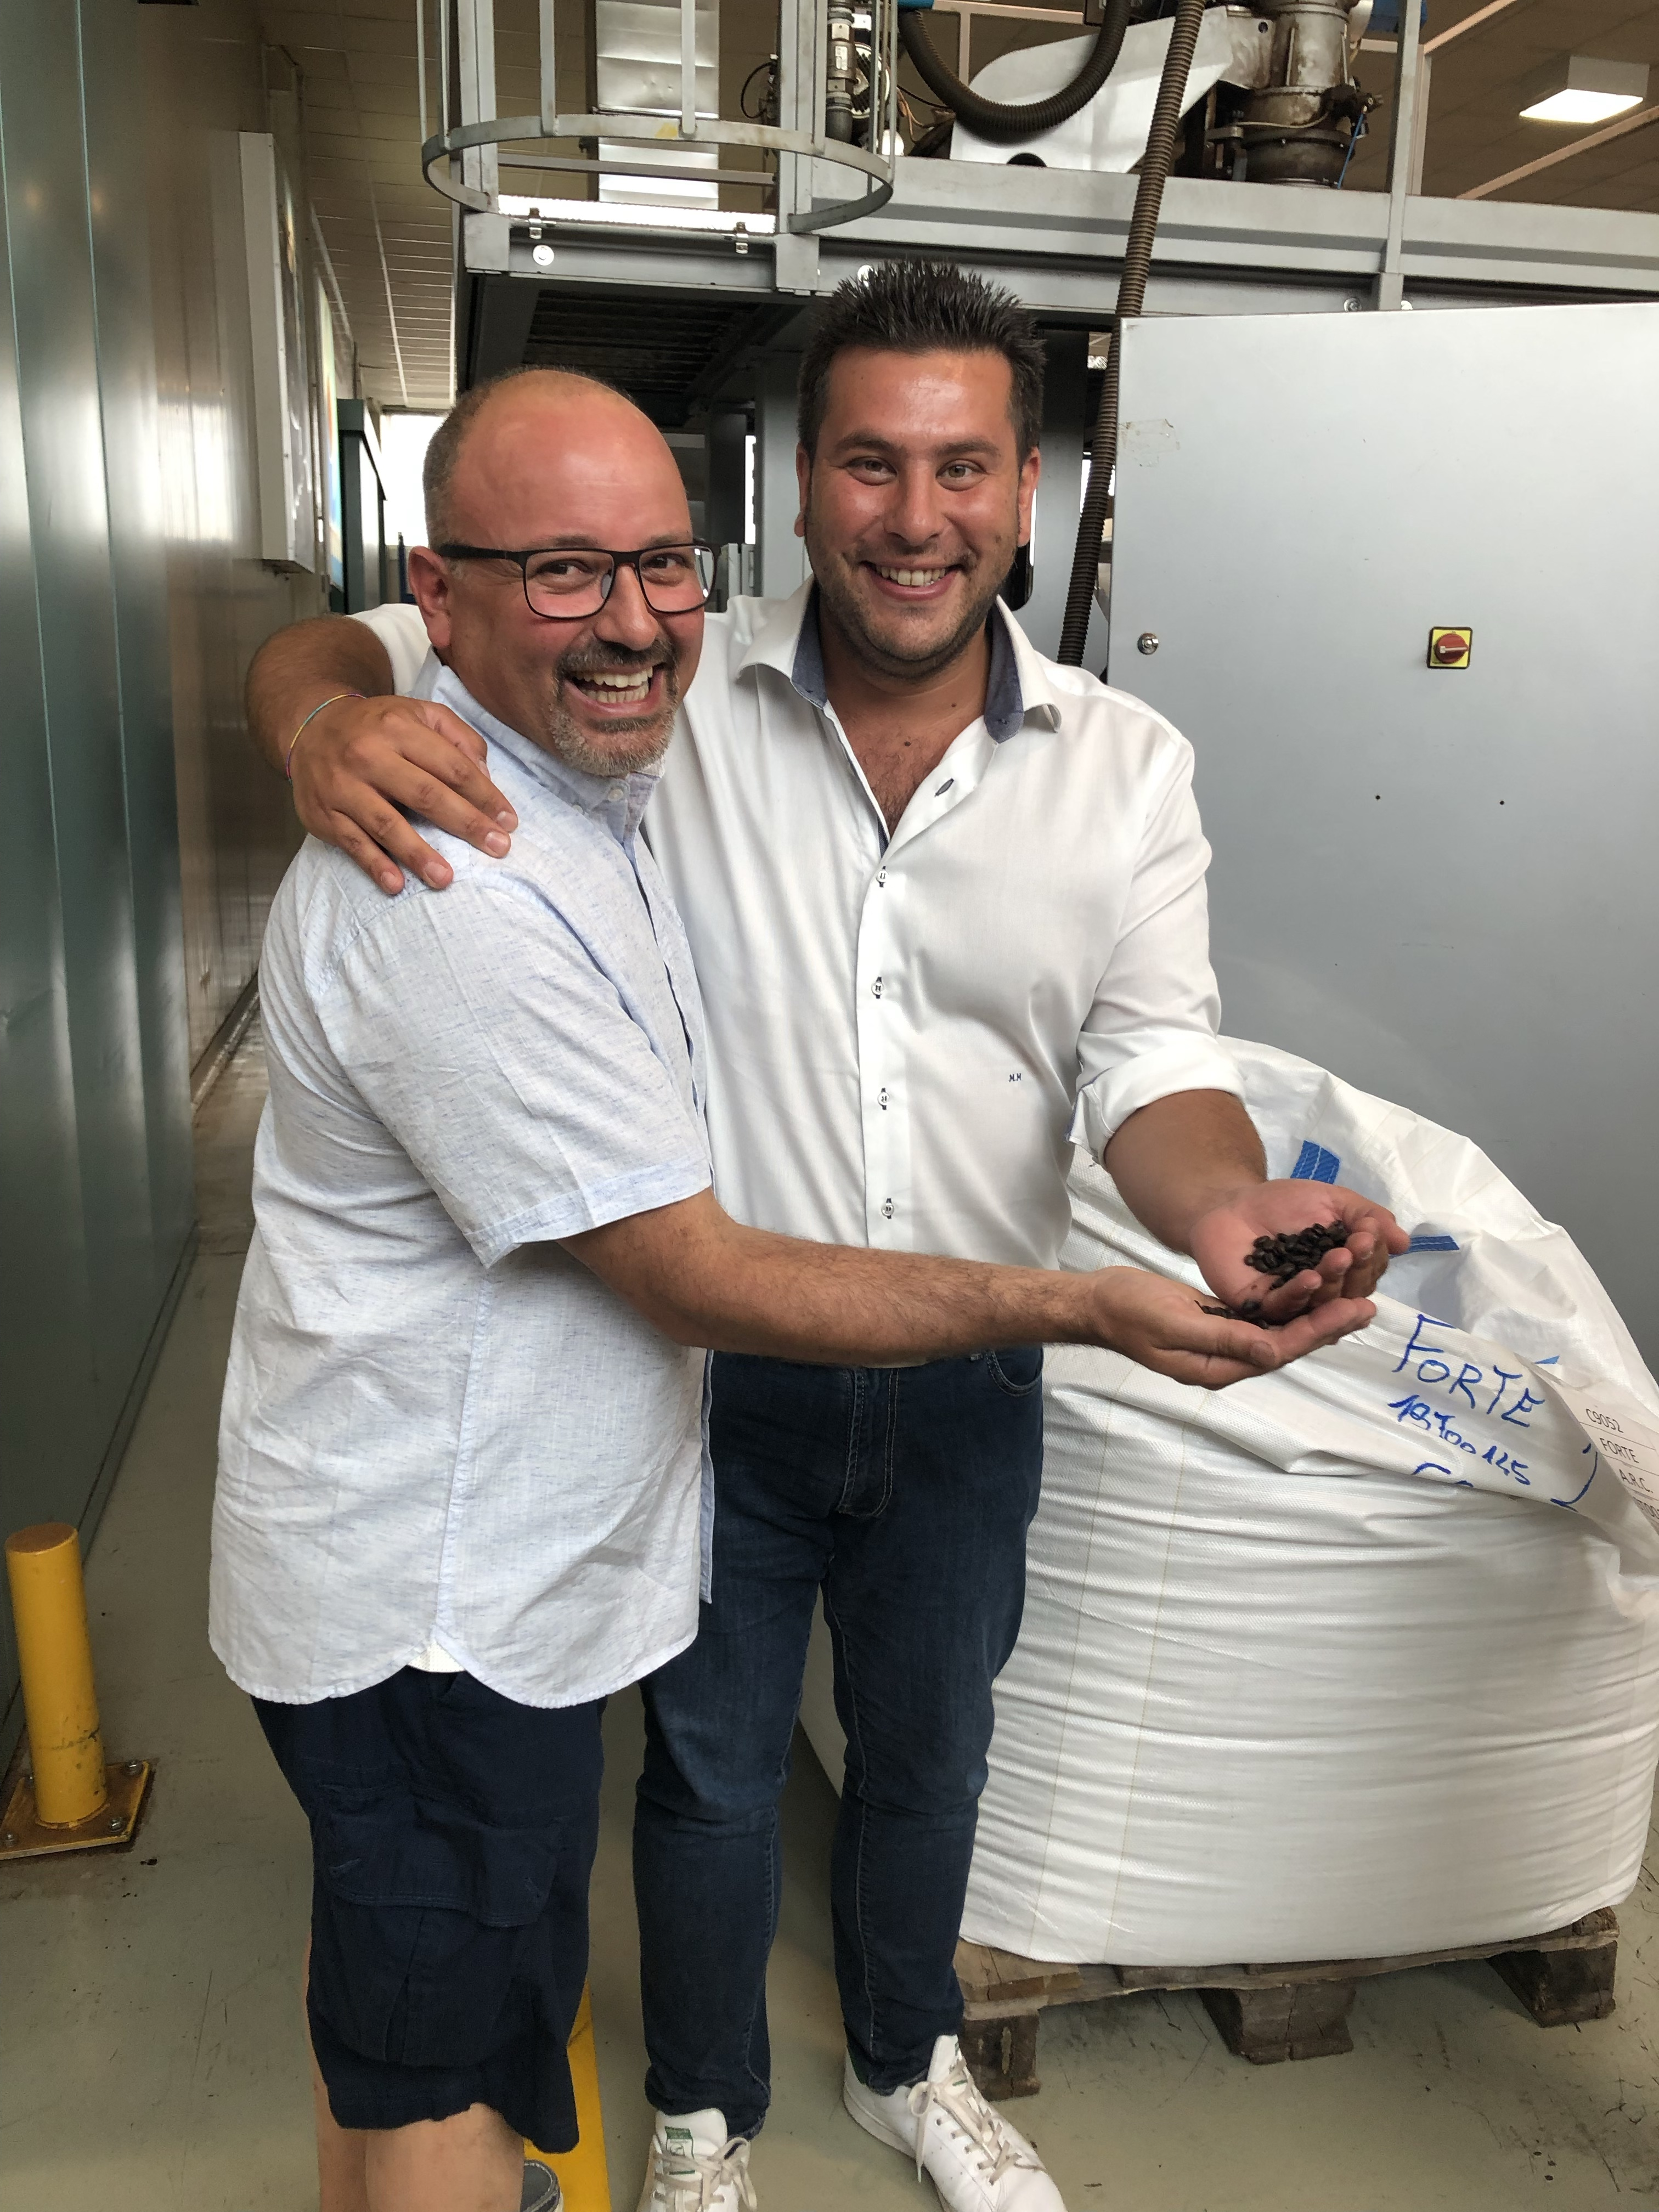 Vittorio & Michele at Barreggio factory in Italy